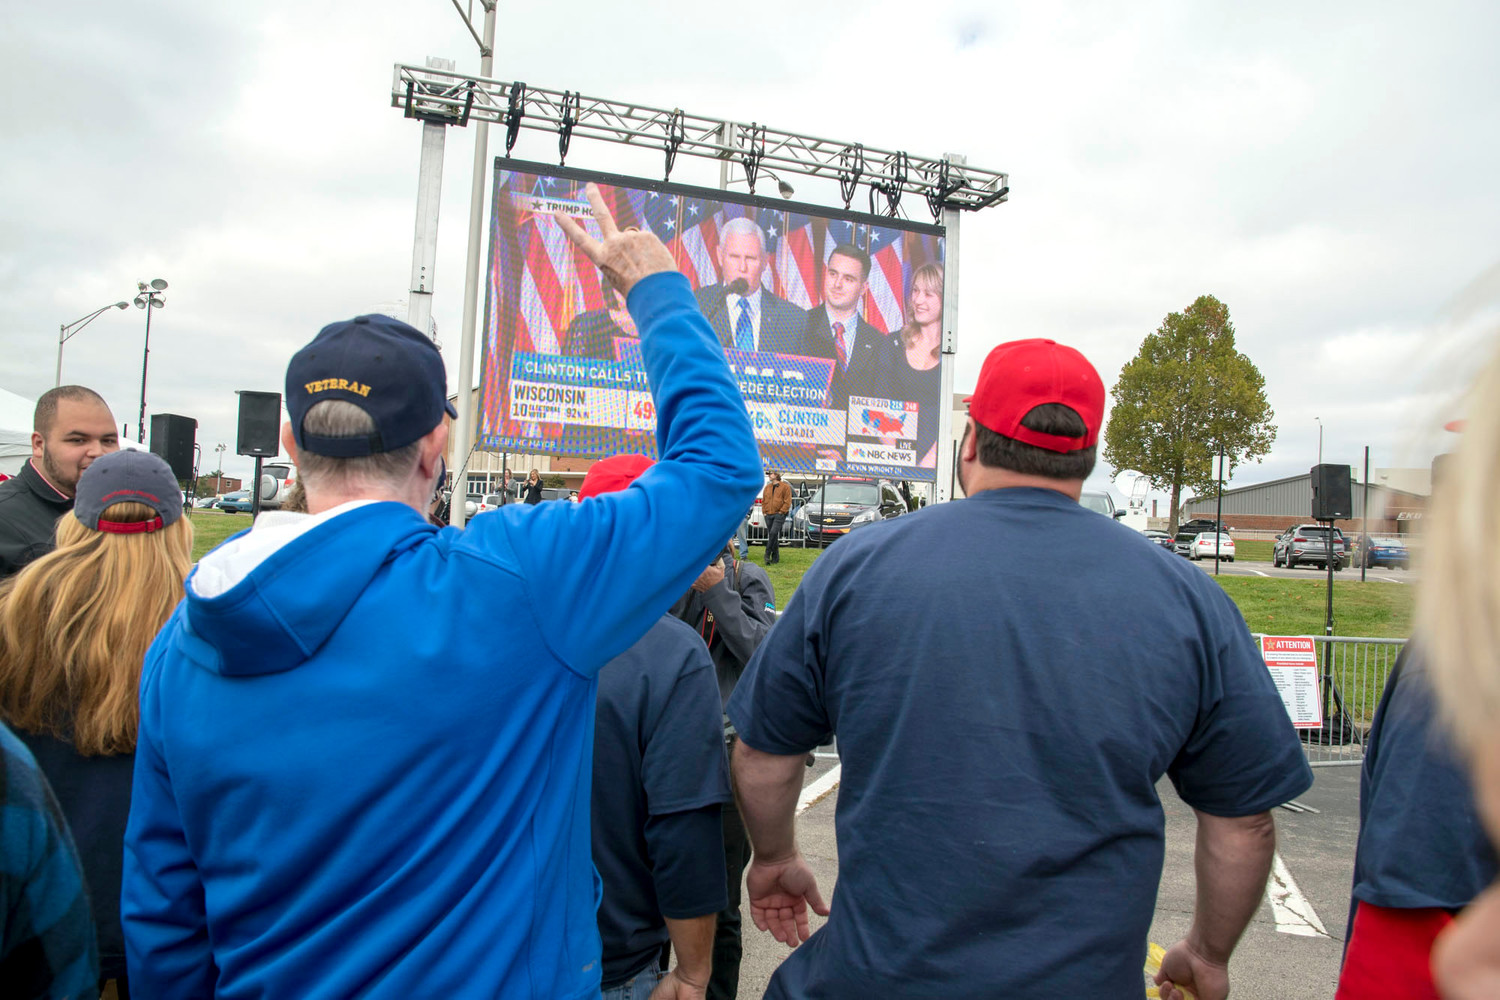 Donald Trump supporters react to electio night video playing on a large screen while waiting to enter Eastern Kentucky's Alumni Coliseum Saturday October 13, 2018, before a campaign rally for U.S. Rep. Andy Barr, R-Ky., in Richmond, Ky. Barr faces Democrat Amy McGrath in the November general election. Photo by John Flavell / For Kentucky Today)